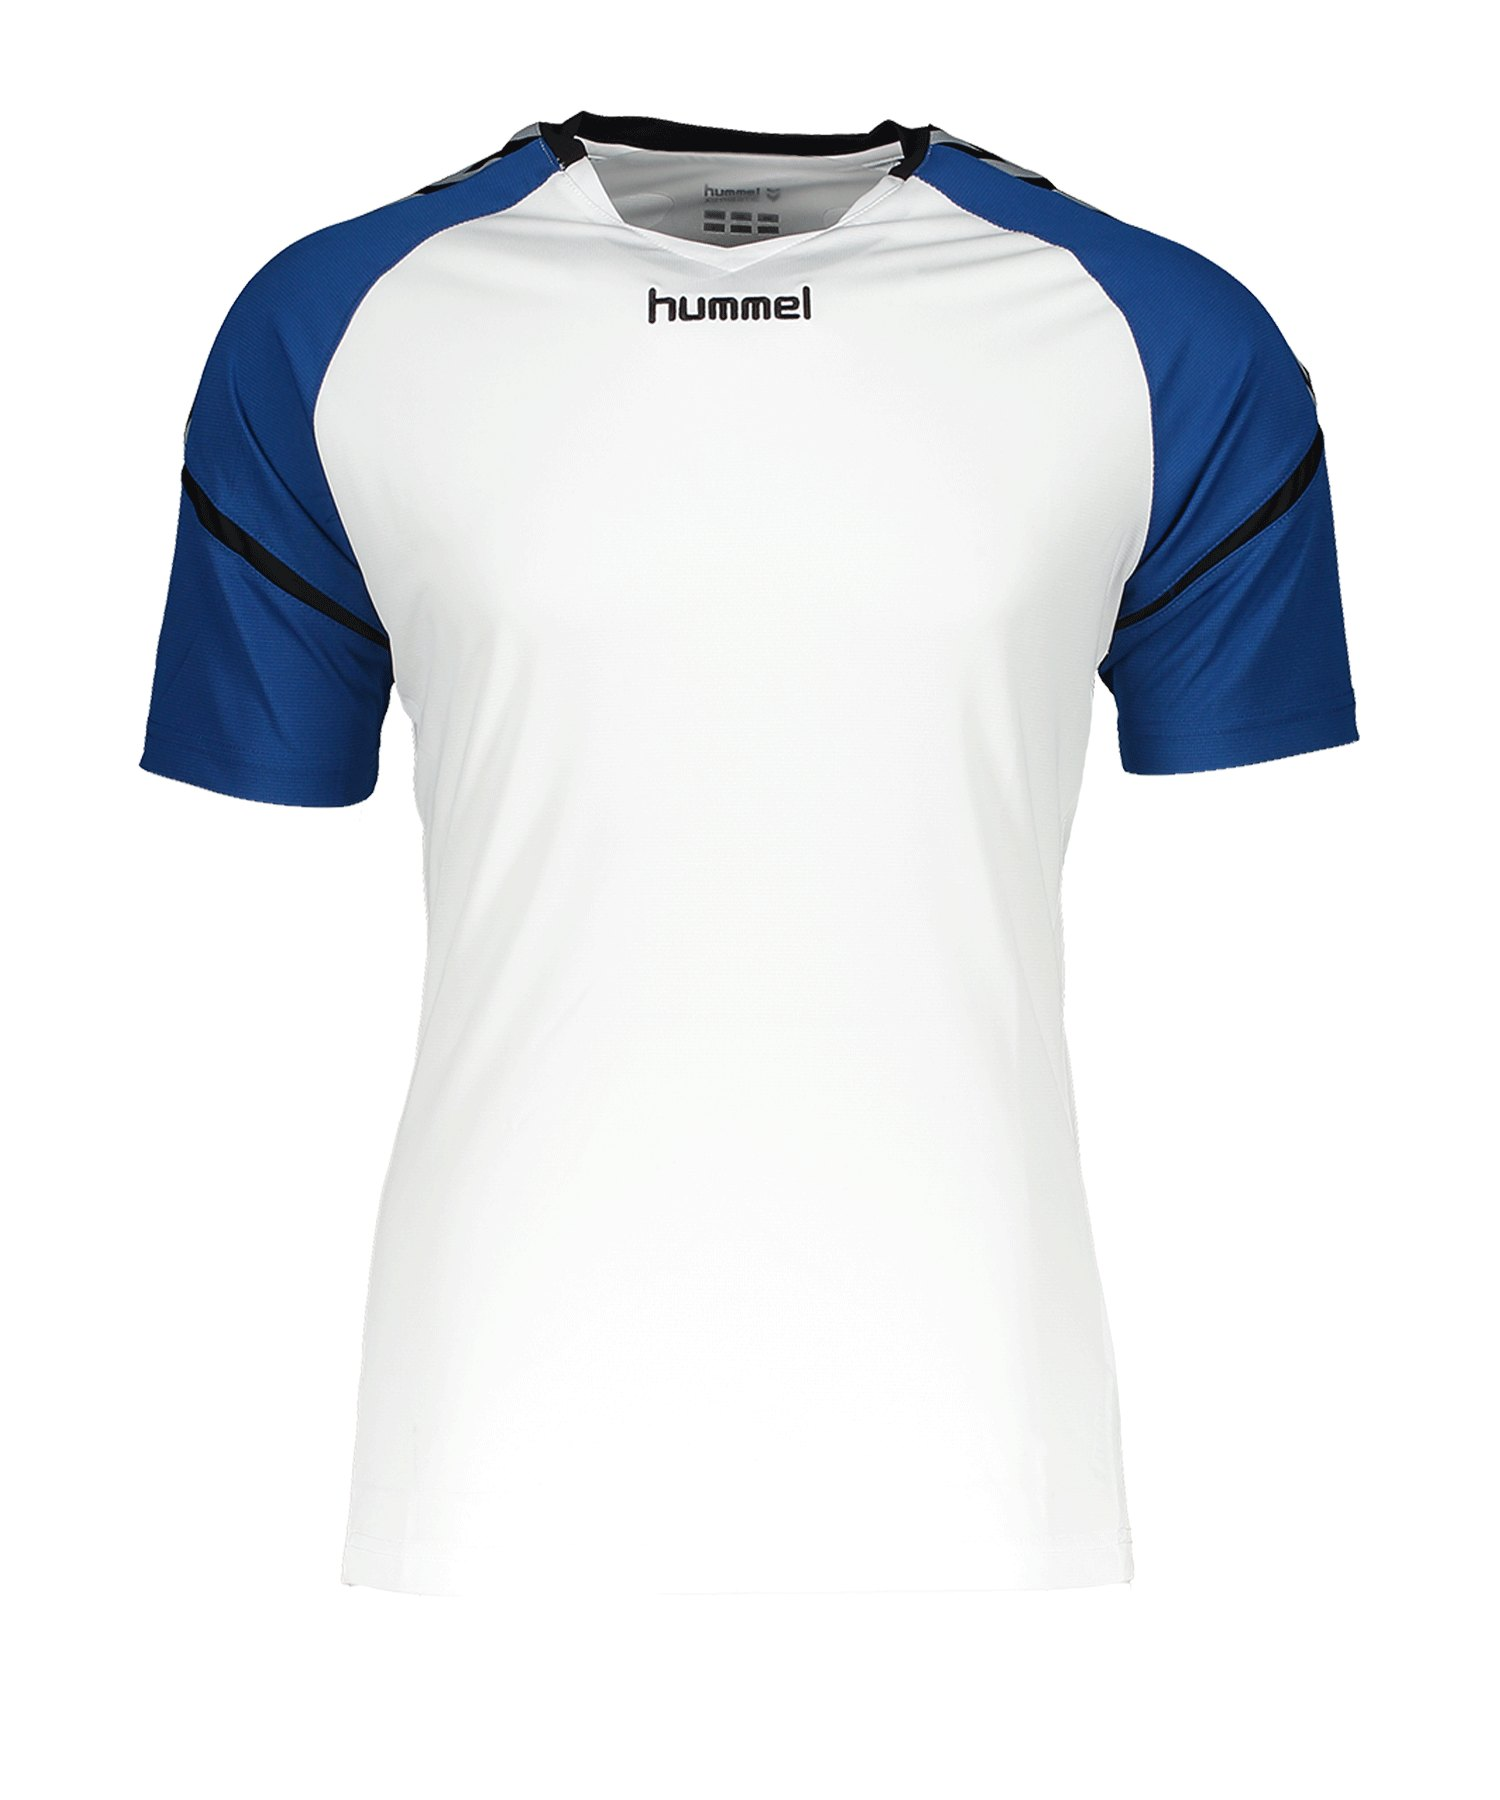 Hummel Authentic Charge SS Trikot Weiss F9369 - weiss